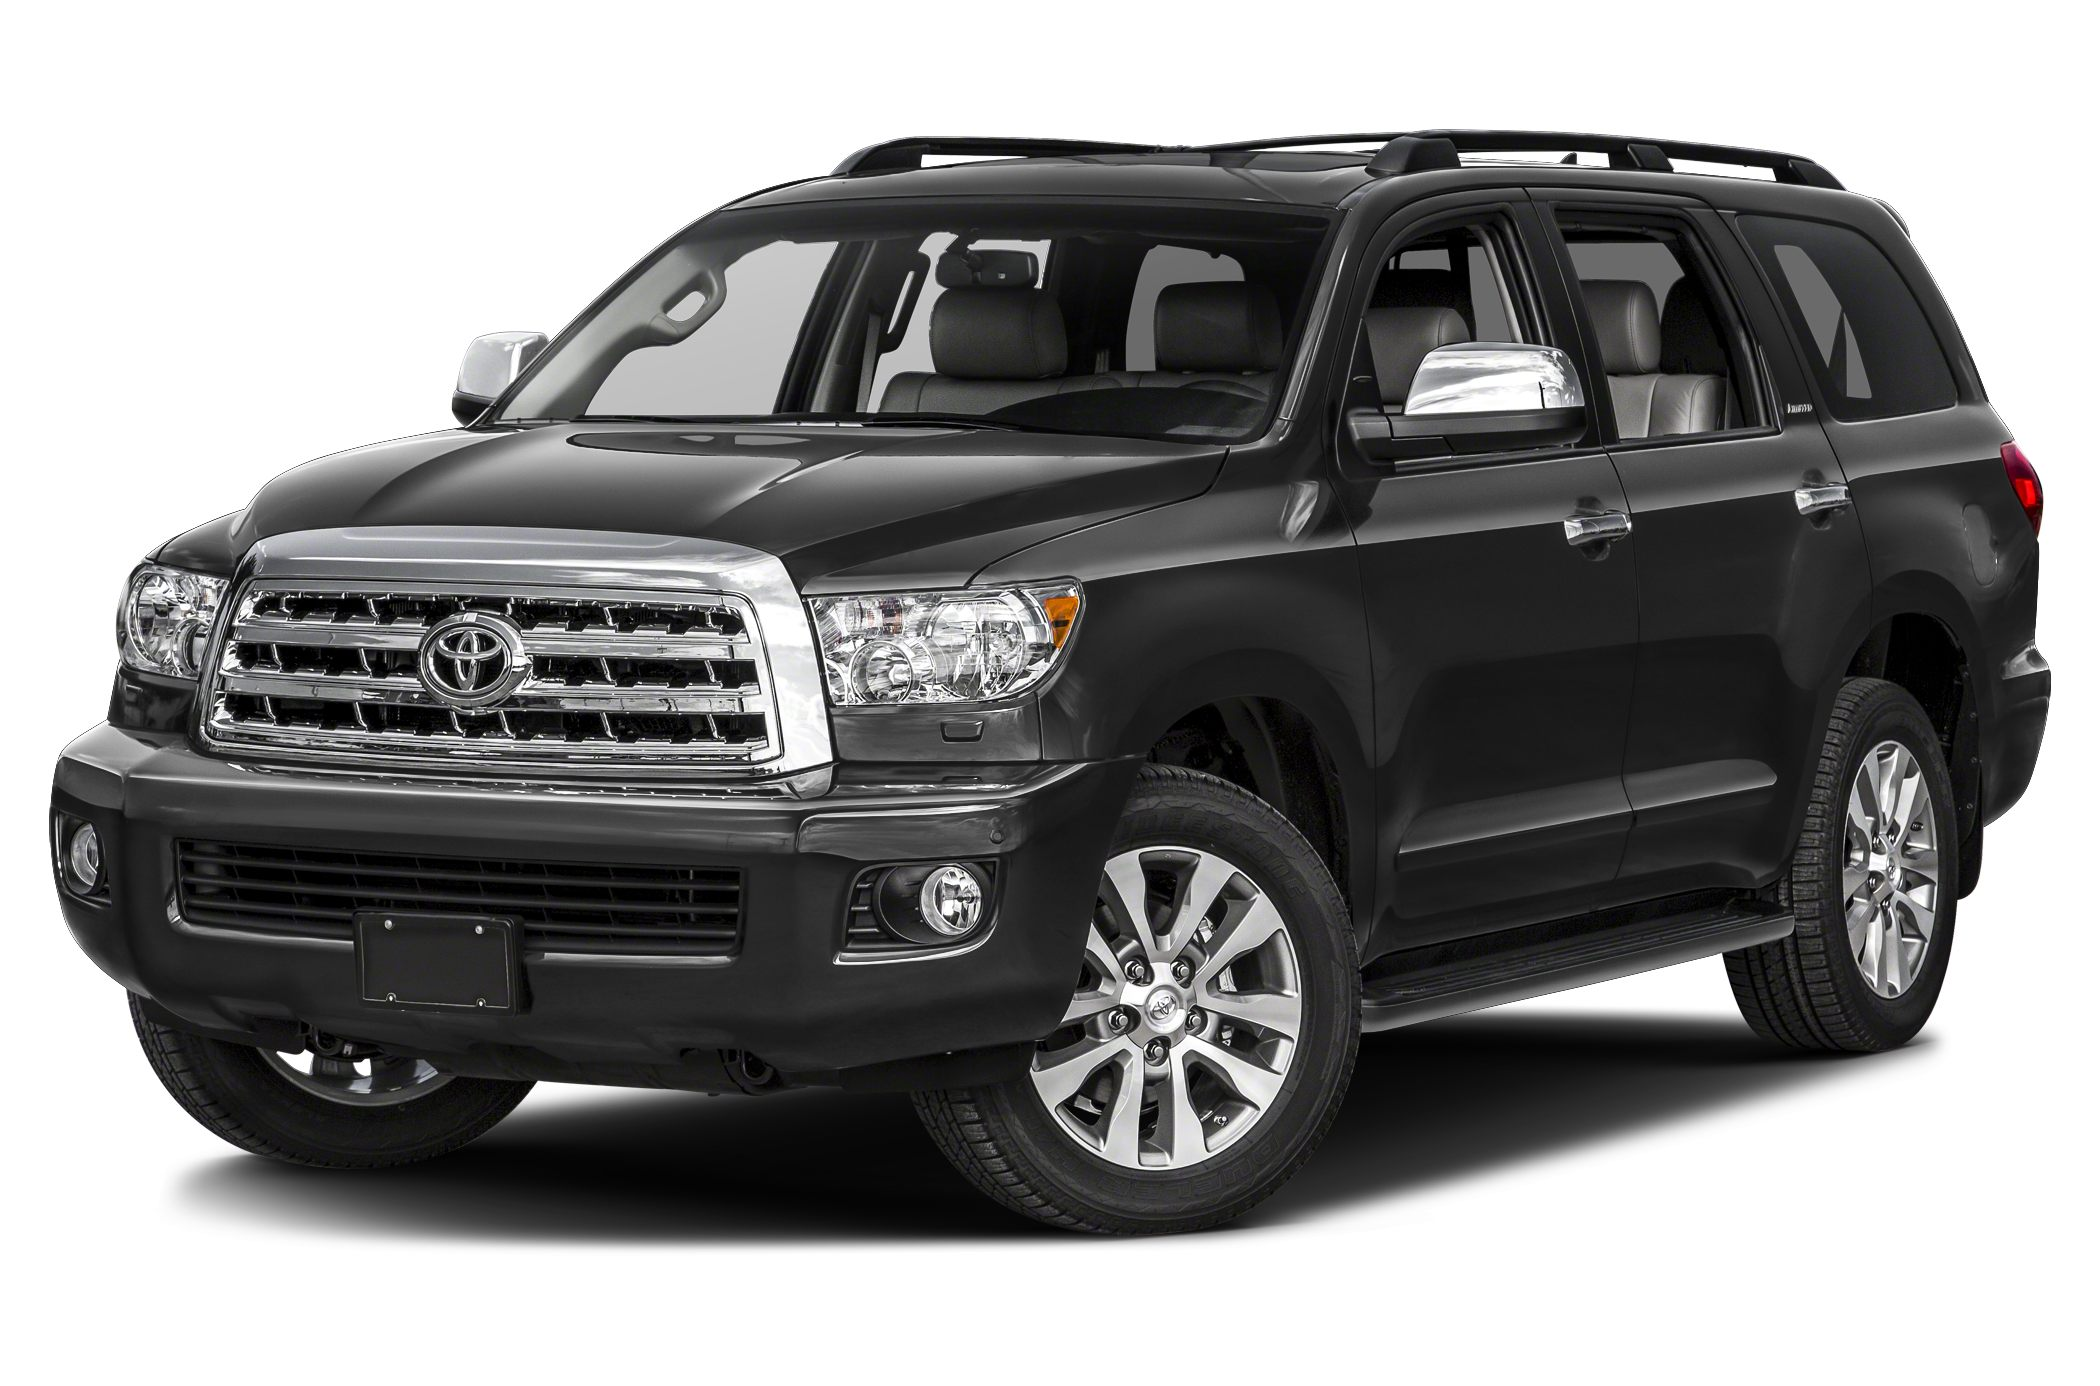 2016 Toyota Sequoia Platinum 2016 Toyota Sequoia Platinum 57L V8 wFFV Hey Look right here T